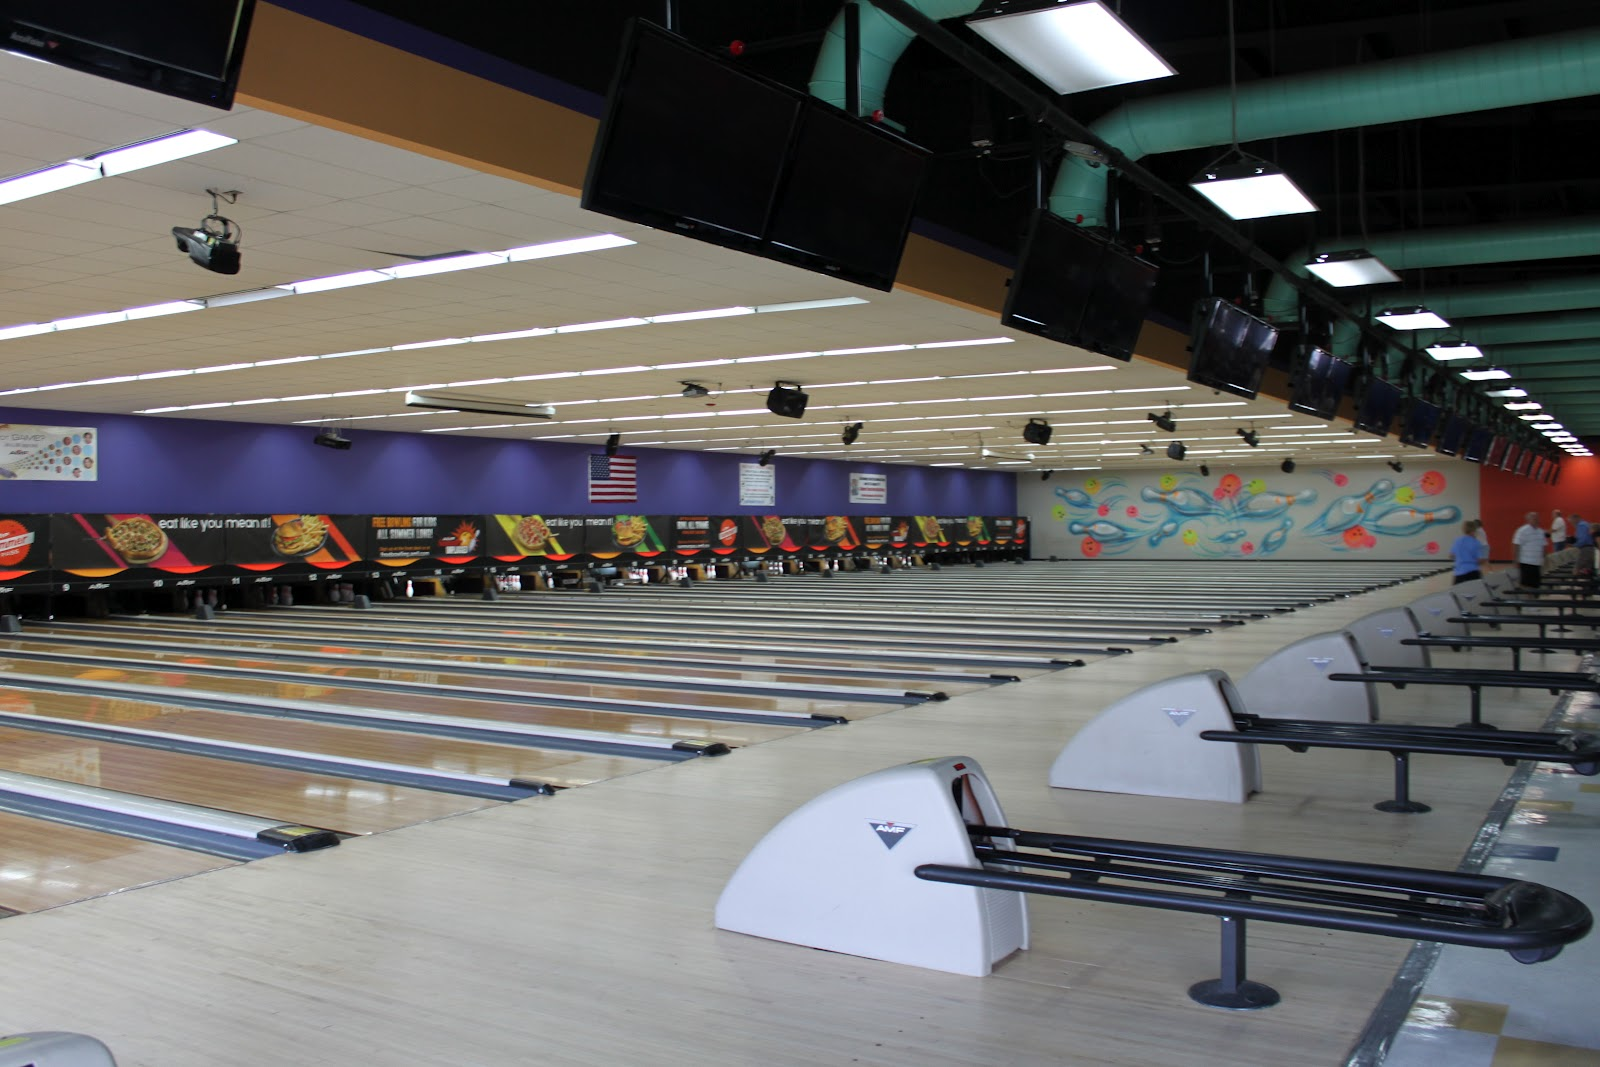 How to Use Kids Bowl Free Coupons Register your child at Kids Bowl Free to receive a coupon good for two free games of bowling each day, all summer long%(33).